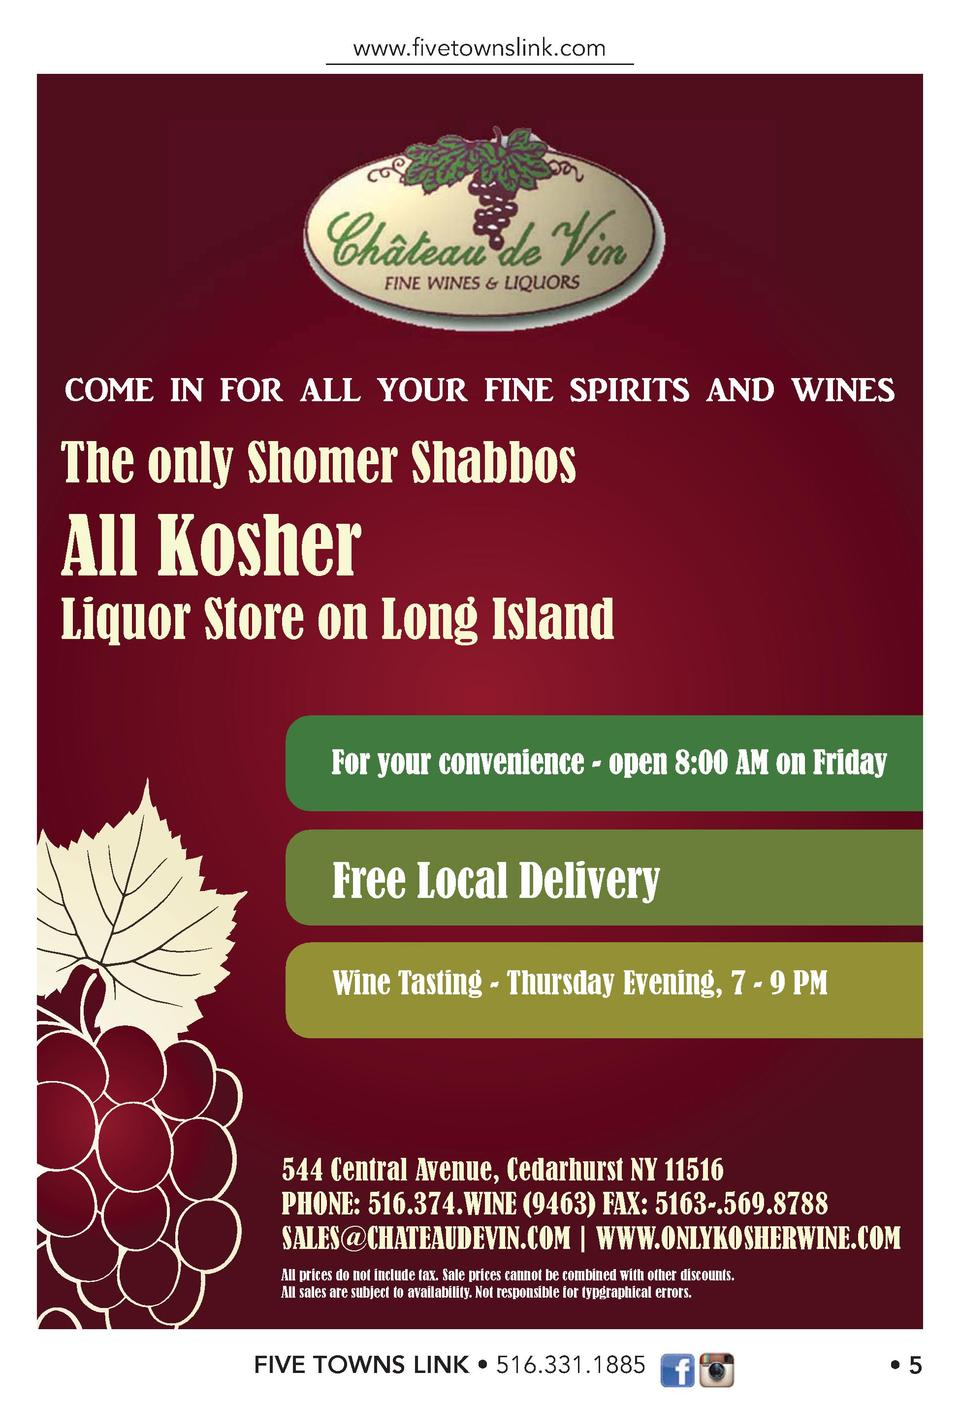 www.   vetownslink.com  COME IN FOR ALL YOUR FINE SPIRITS AND WINES  The only Shomer Shabbos  All Kosher  Liquor Store on ...